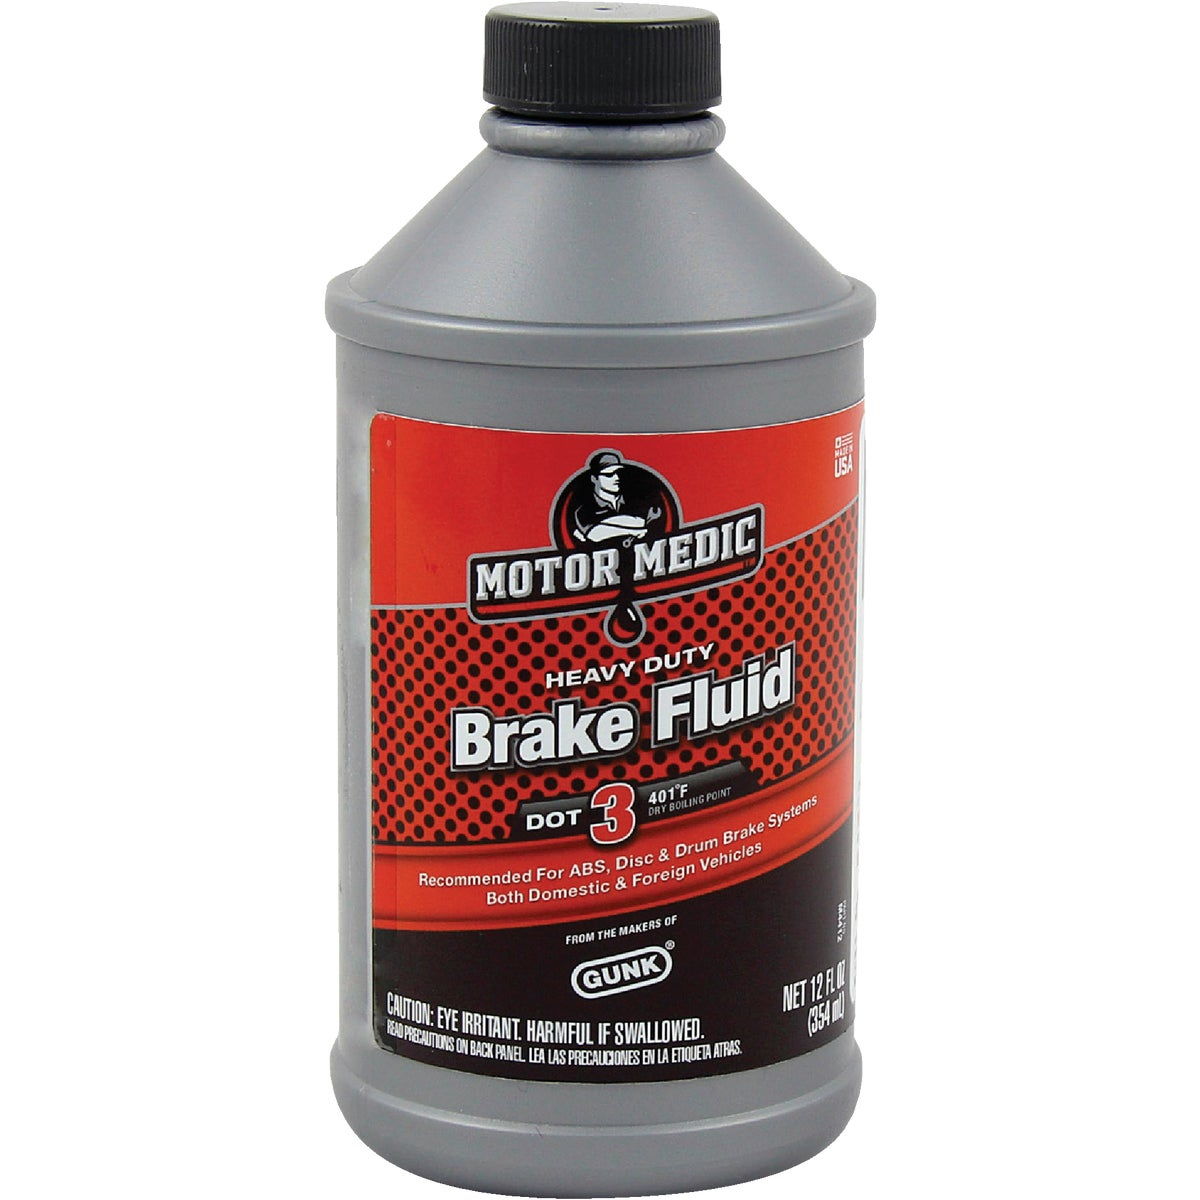 12OZ BRAKE FLUID - M4412 by Radiator Specialty